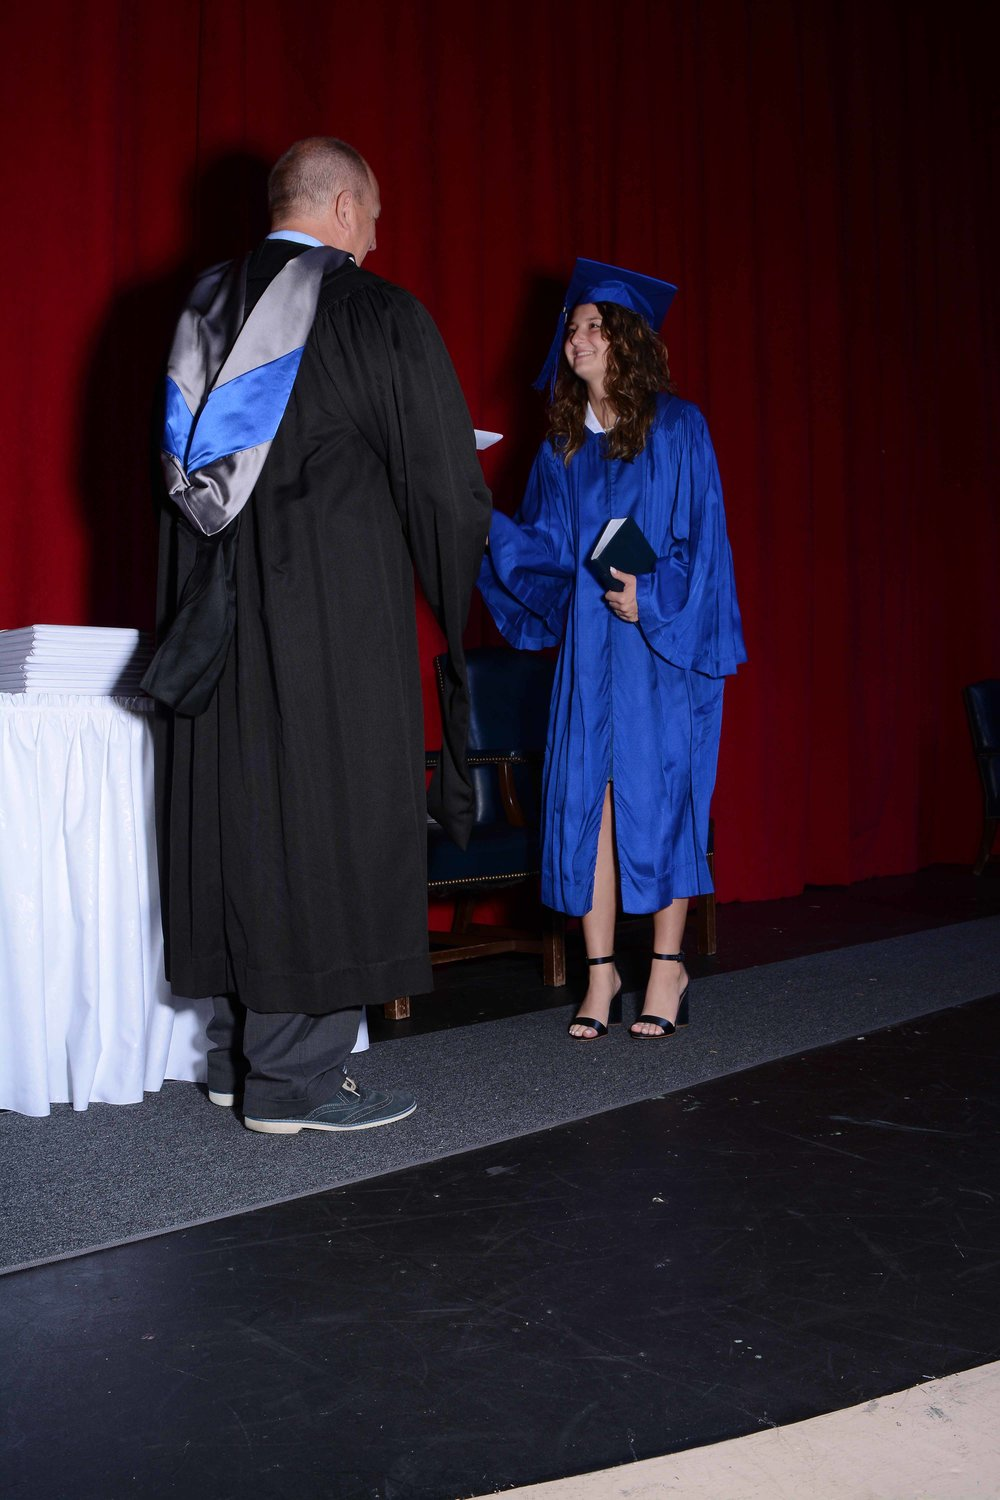 May14 Commencement05.jpg